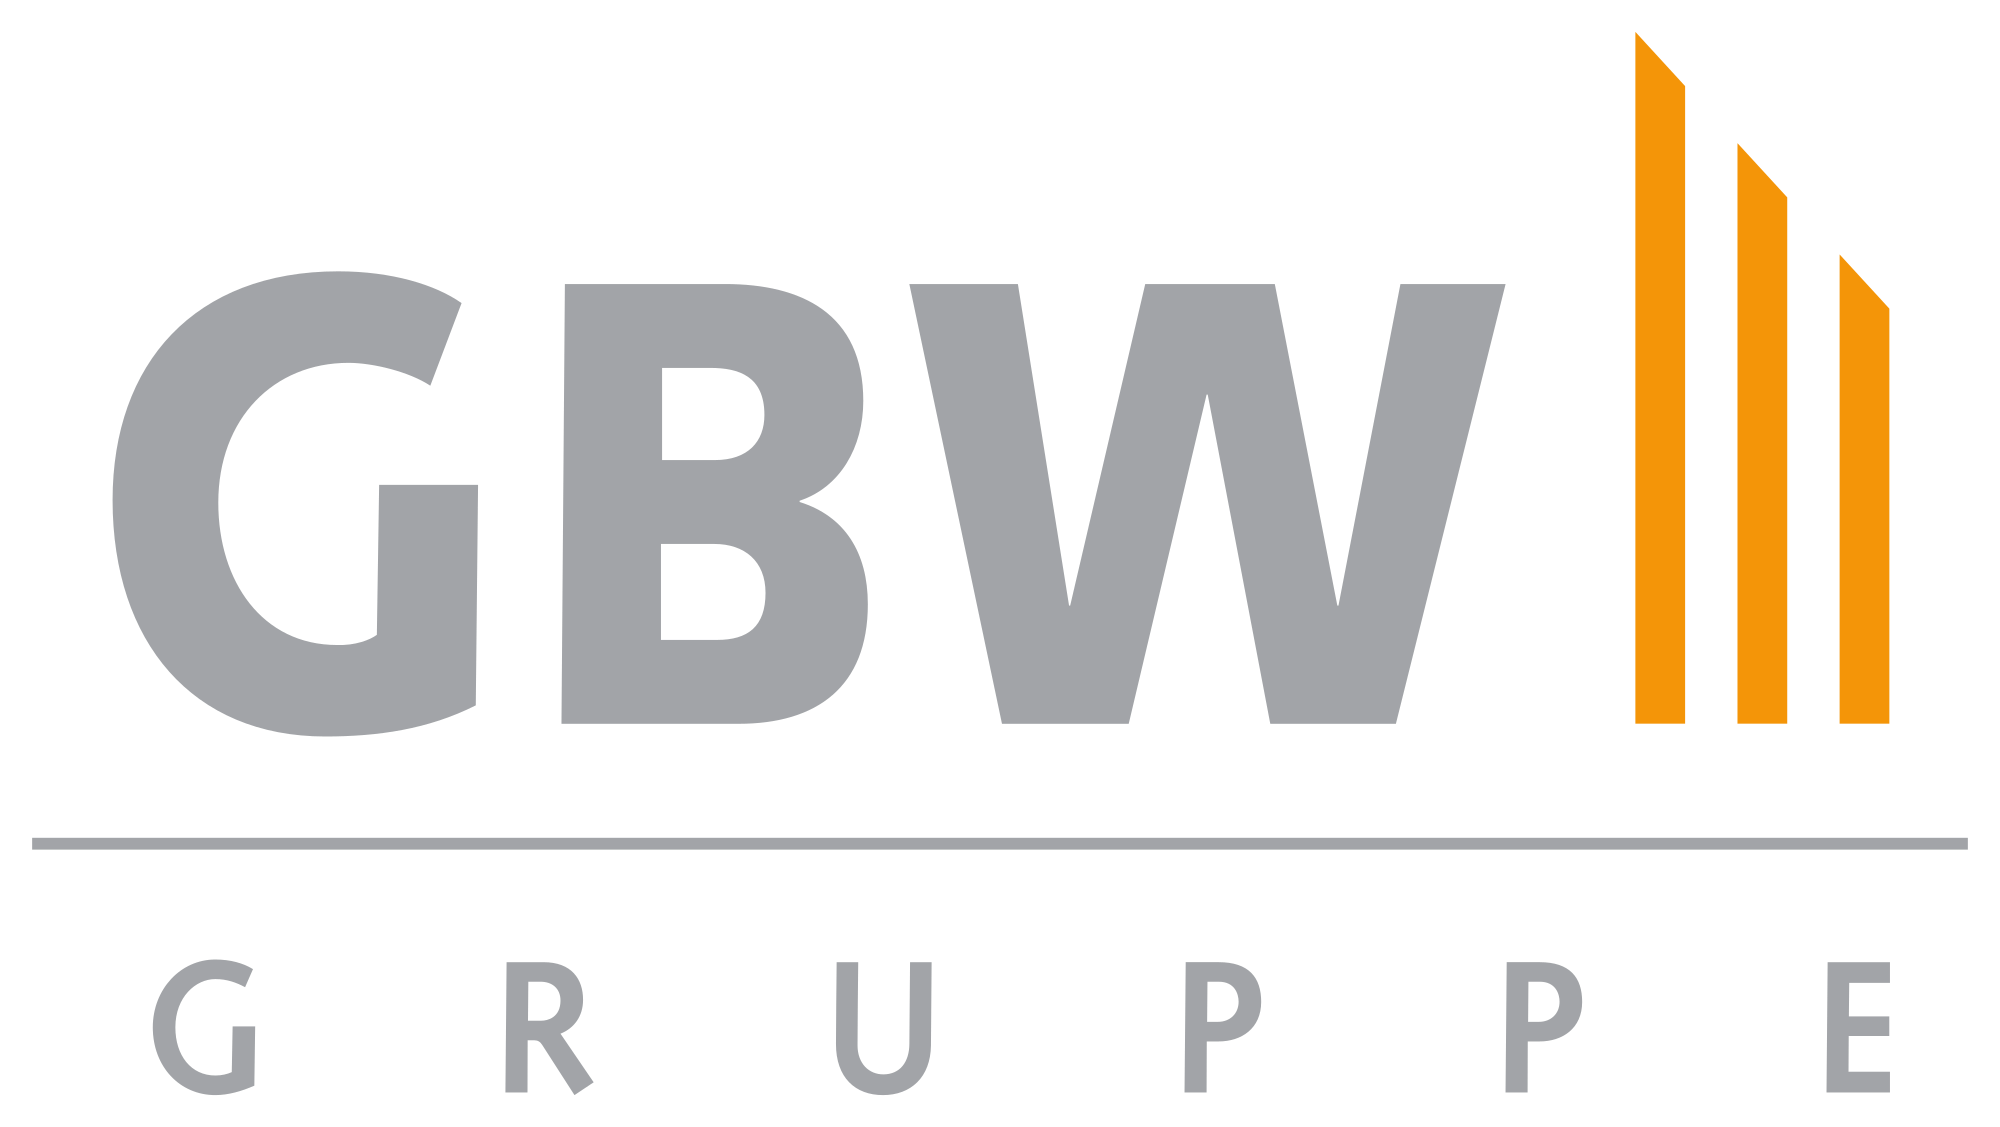 GBW Real Estate GmbH & Co. KG